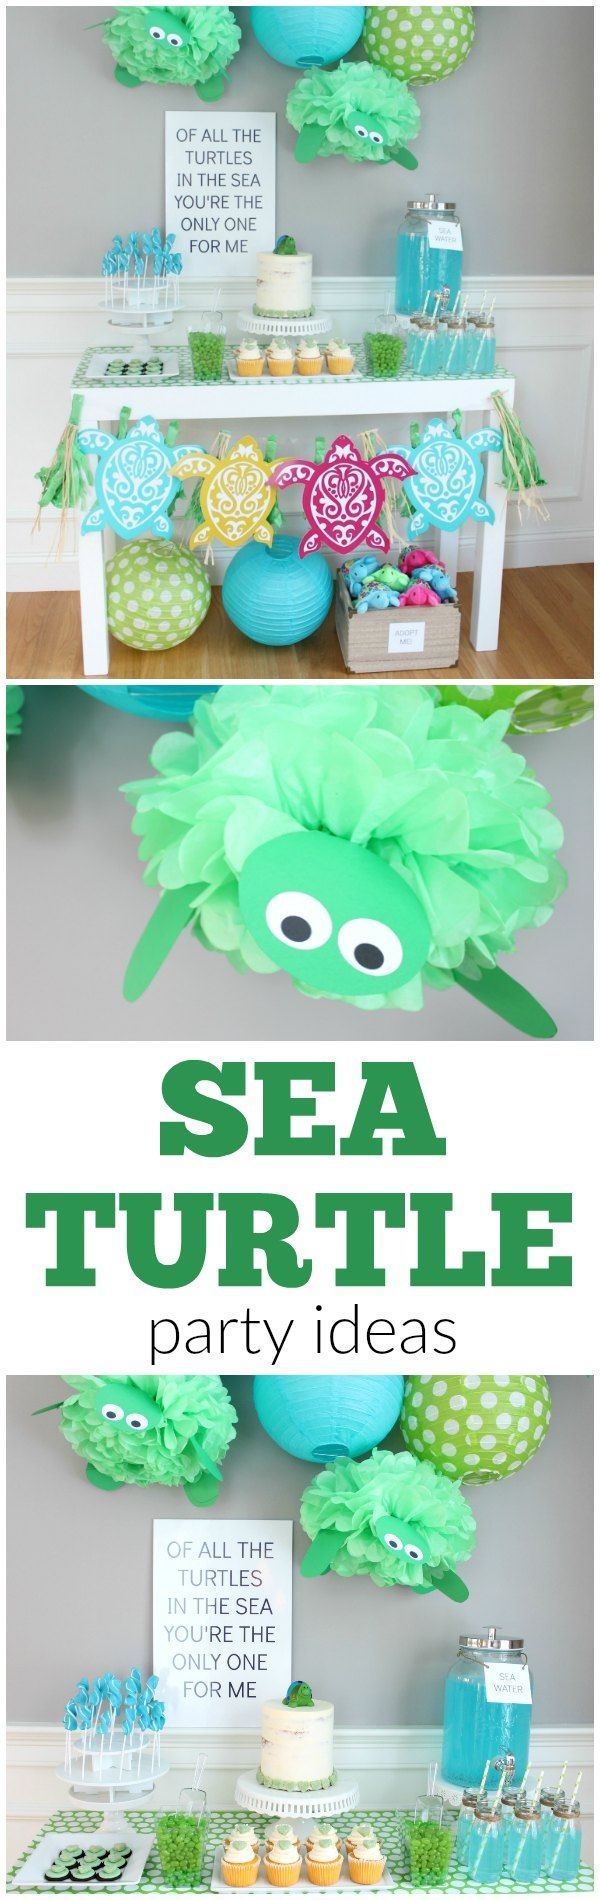 Sea Turtle Birthday Party Ideas